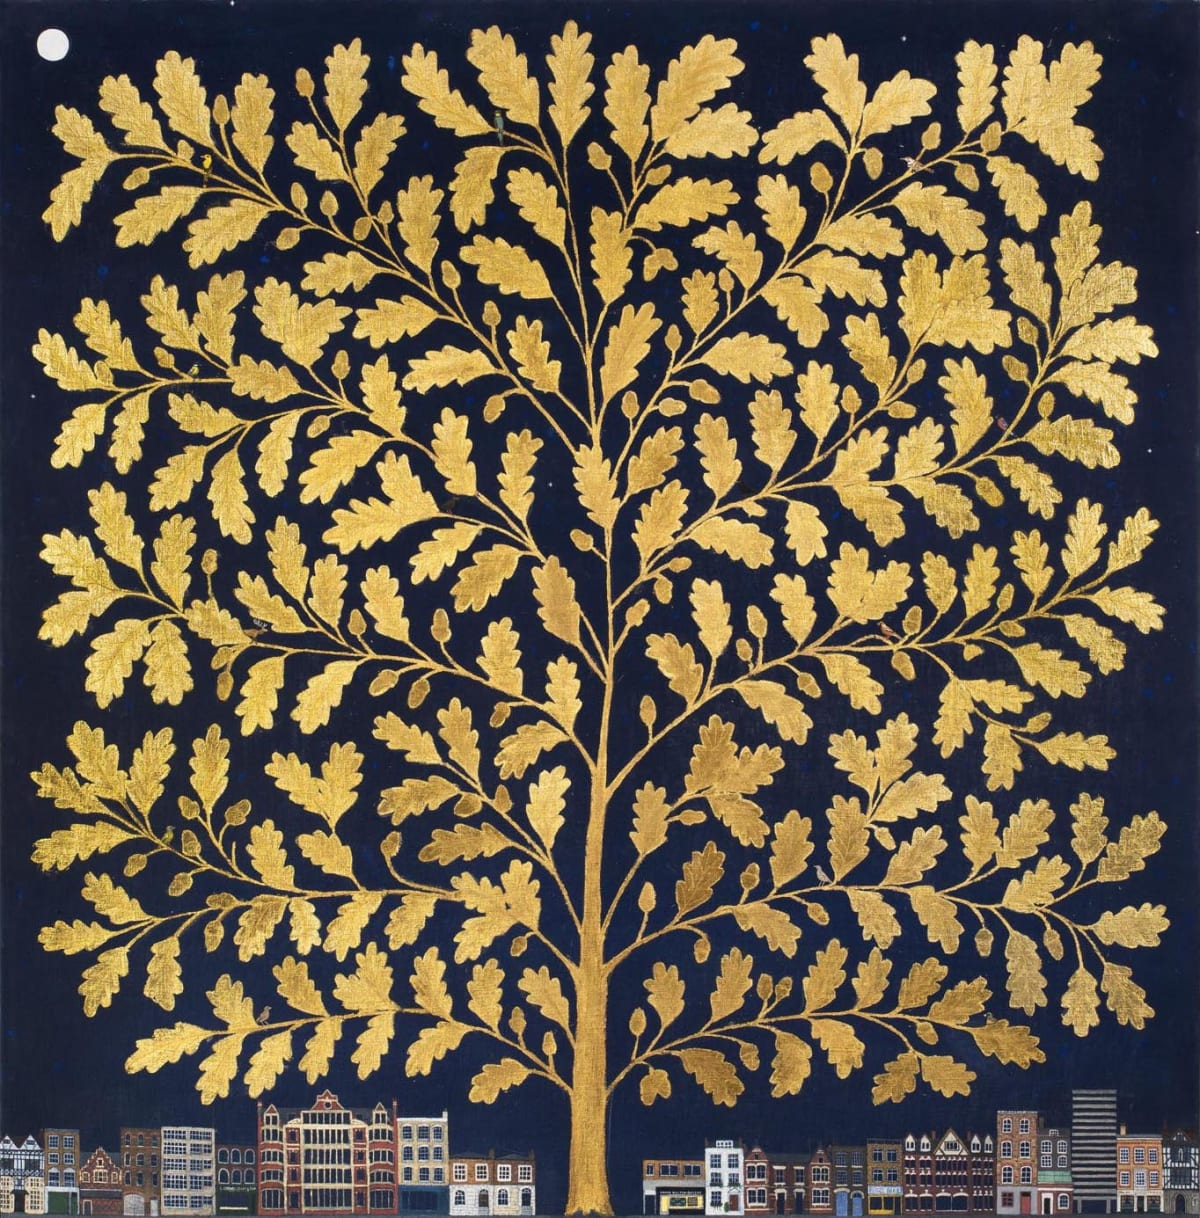 Jethro BUCK (b.1986) London's Oak, 2019 SOLD